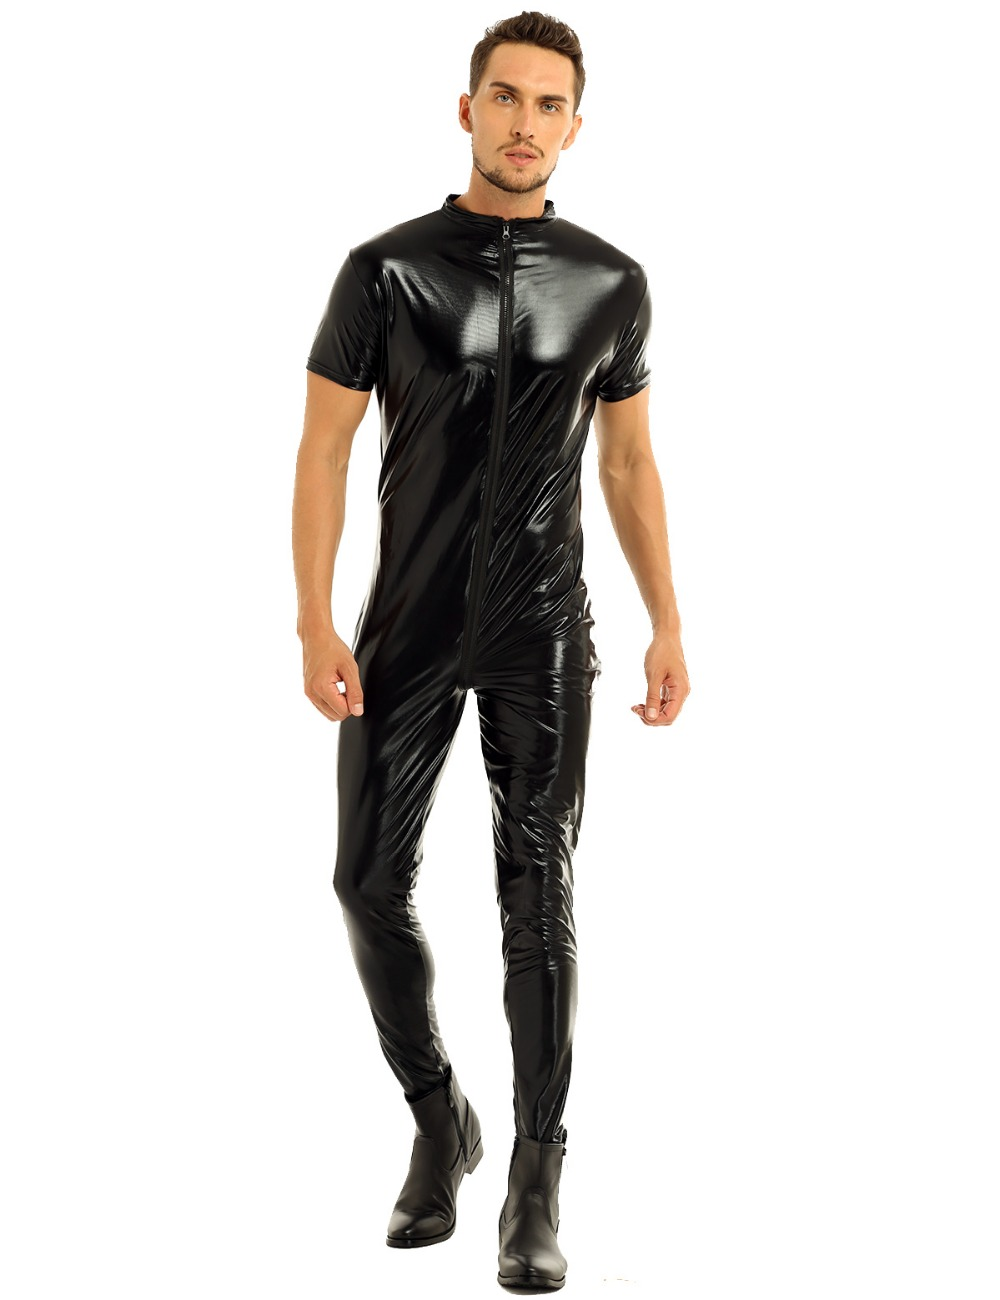 iEFiEL Mens Stretchy Faux Leather Short Sleeves Zipper Crotch Full Body Leotard Bodysuit Clubwear Overalls for Evening Party 13